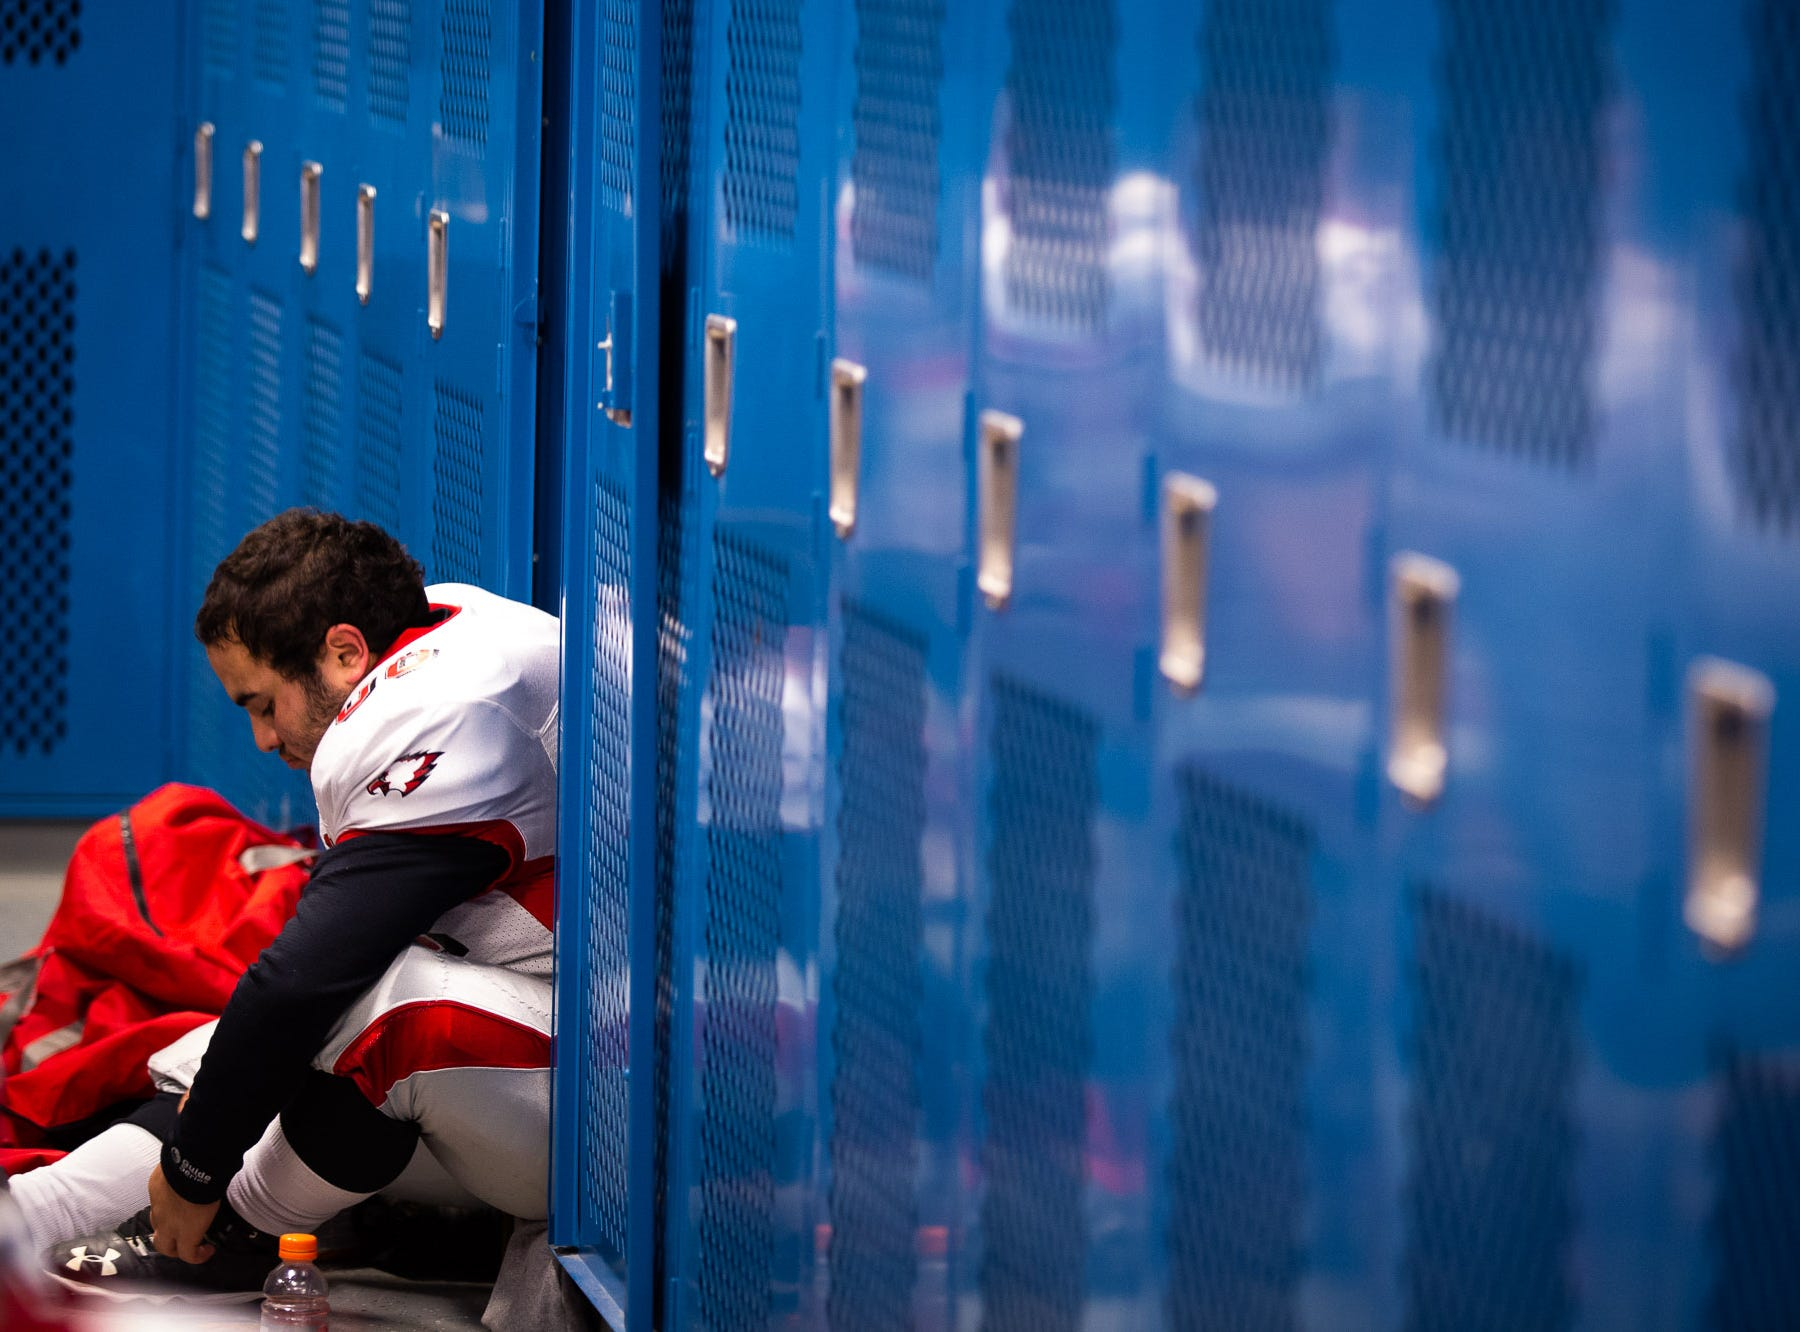 Bermudian Springs' Josh Wenrich (66) sits in the locker room before the District 3 Class 3A championship game between Bermudian Springs and Middletown, Saturday, Nov. 17, 2018, at Cedar Crest High School. Middletown leads Bermudian Springs 28-6 at the half.